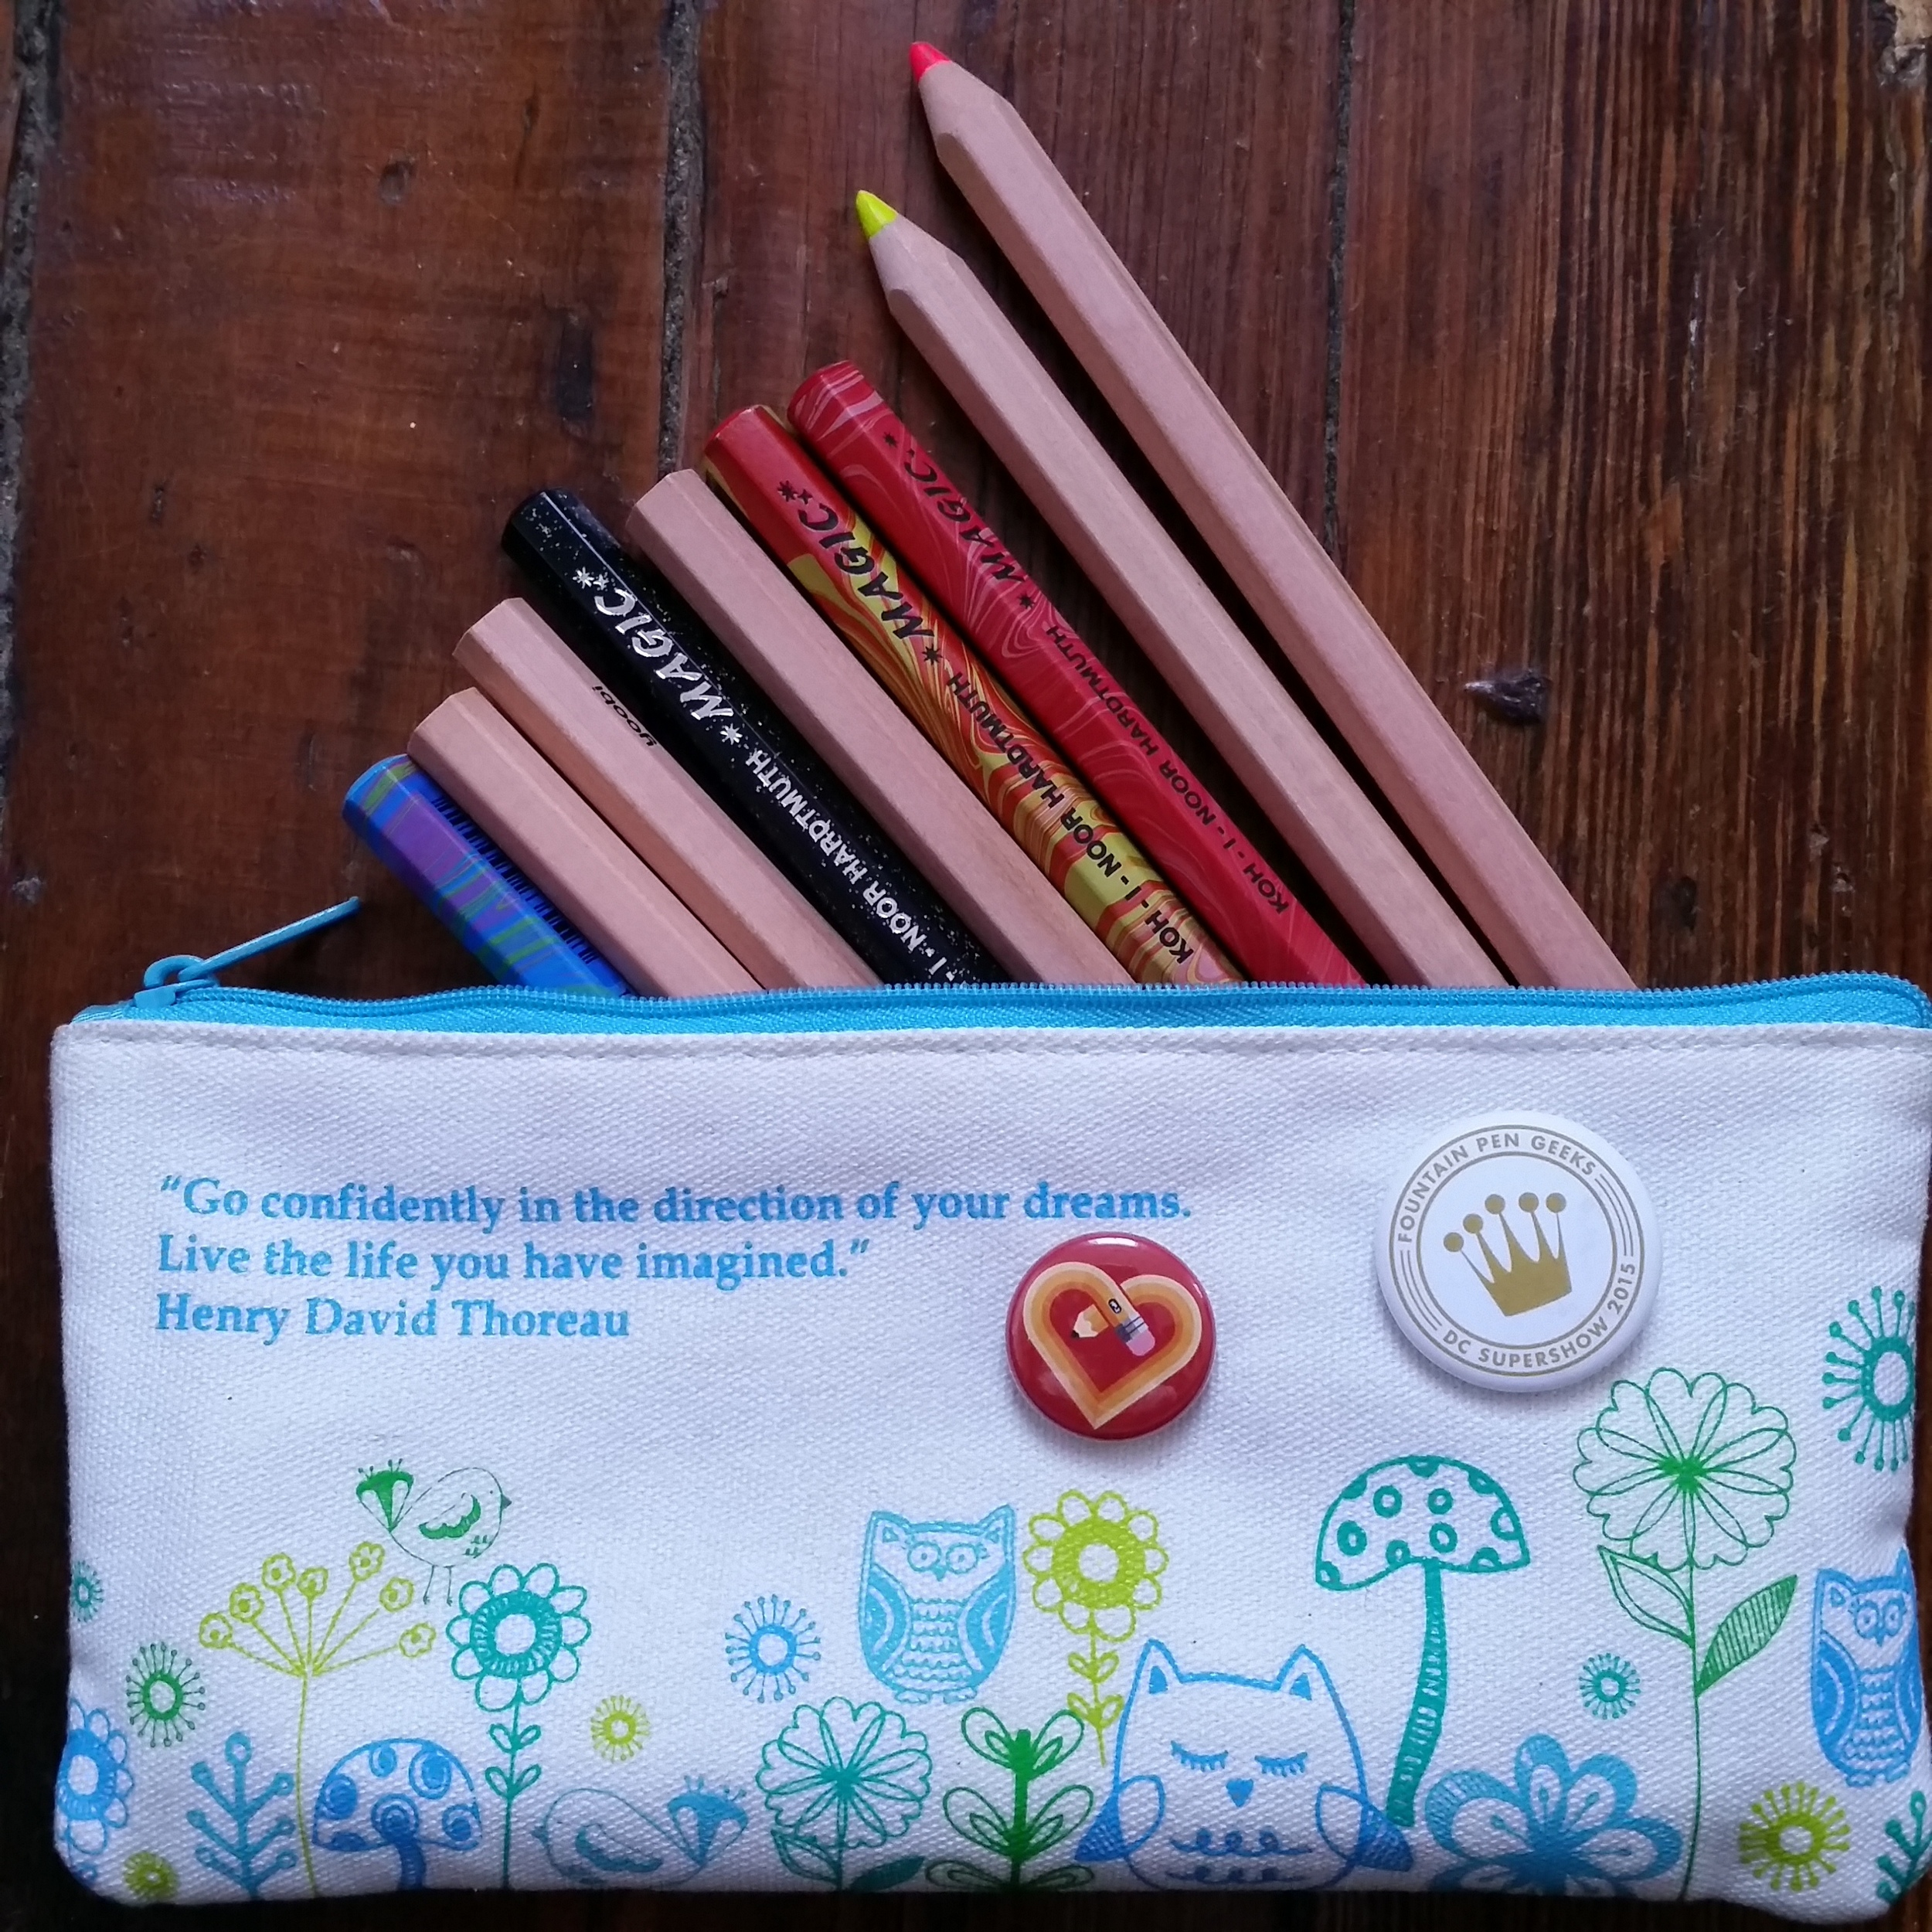 Pencil pouch with Yoobi highlighter pencils and Koh-i-noor Magic Pencils